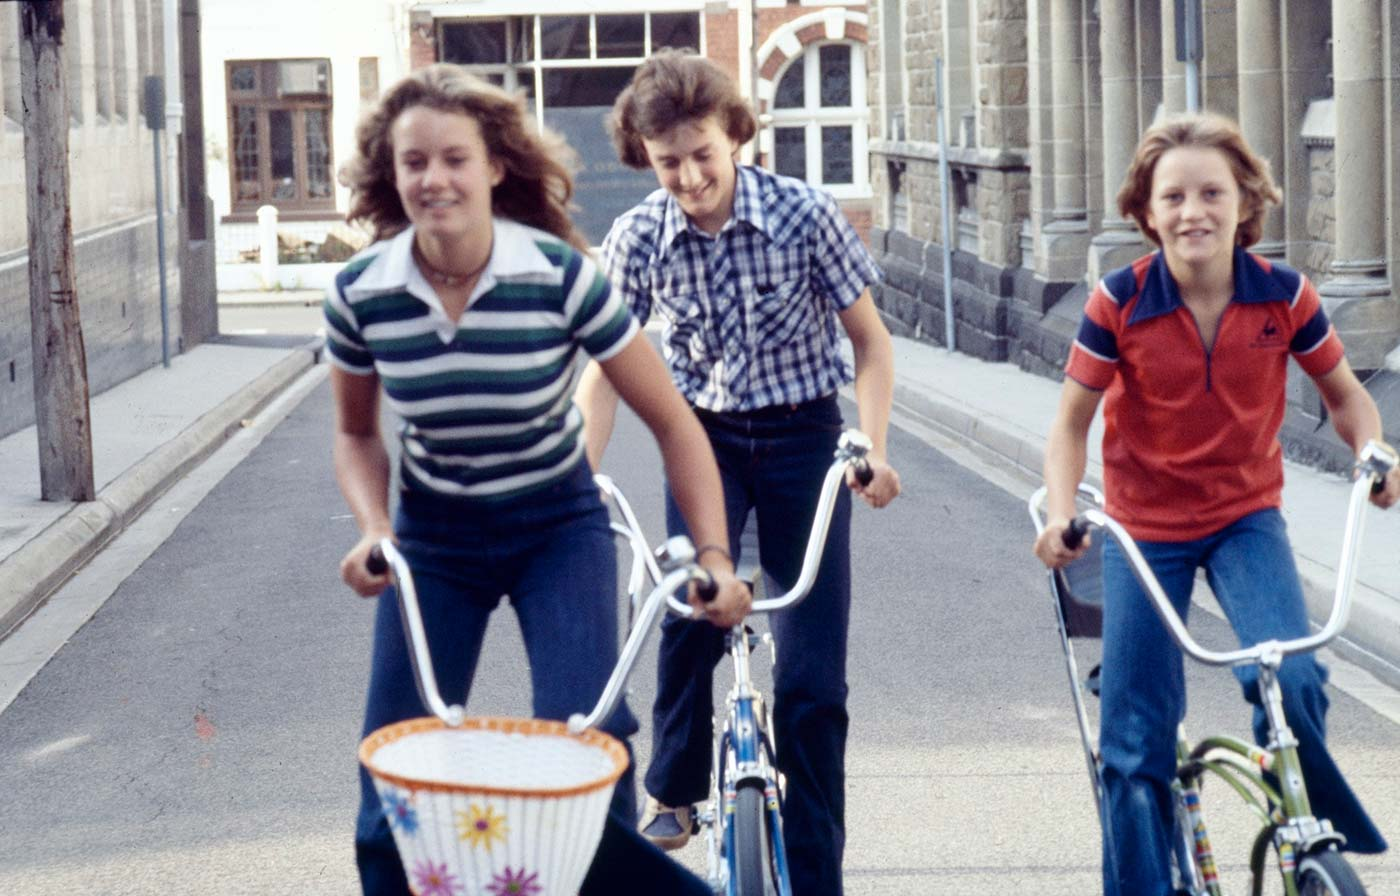 Children on bicycles in Melbourne, about 1980. - click to view larger image